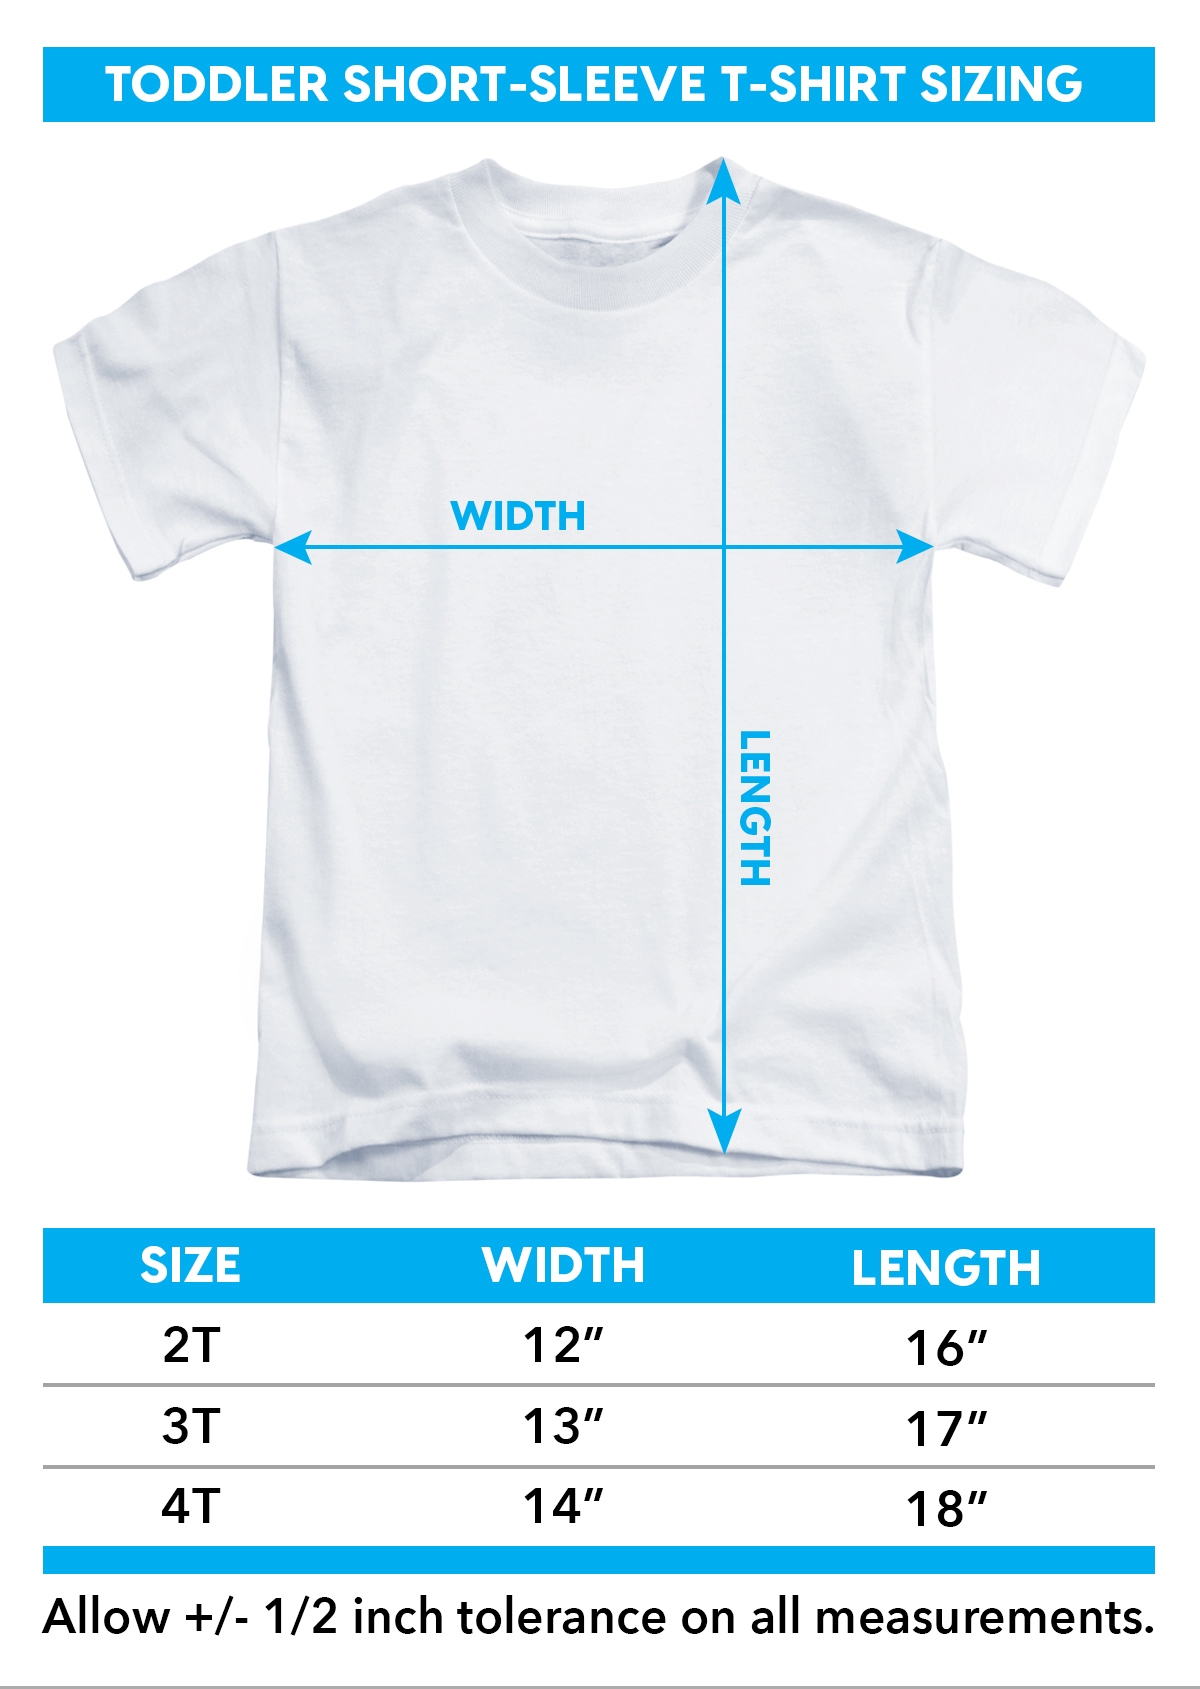 Sizing Chart for Lobo Toddler T-Shirt - Big Faces